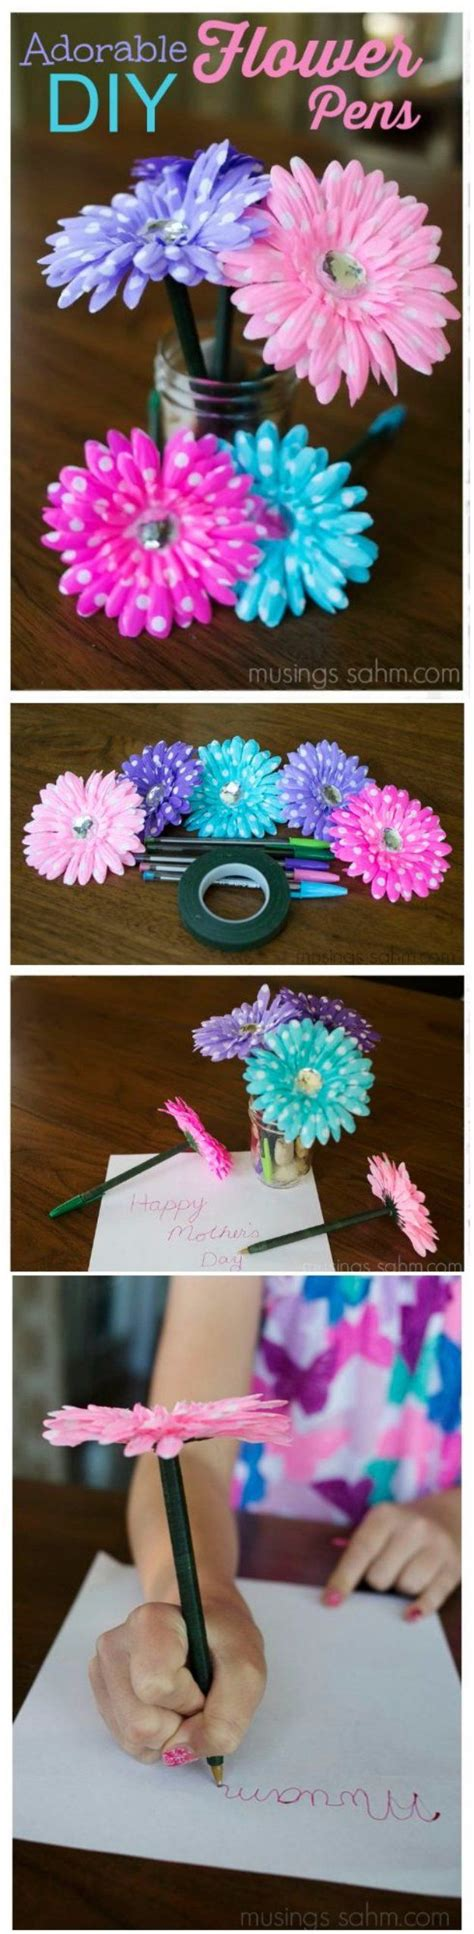 Easy Handmade Crafts To Sell - 50 easy crafts to make and sell flower pens